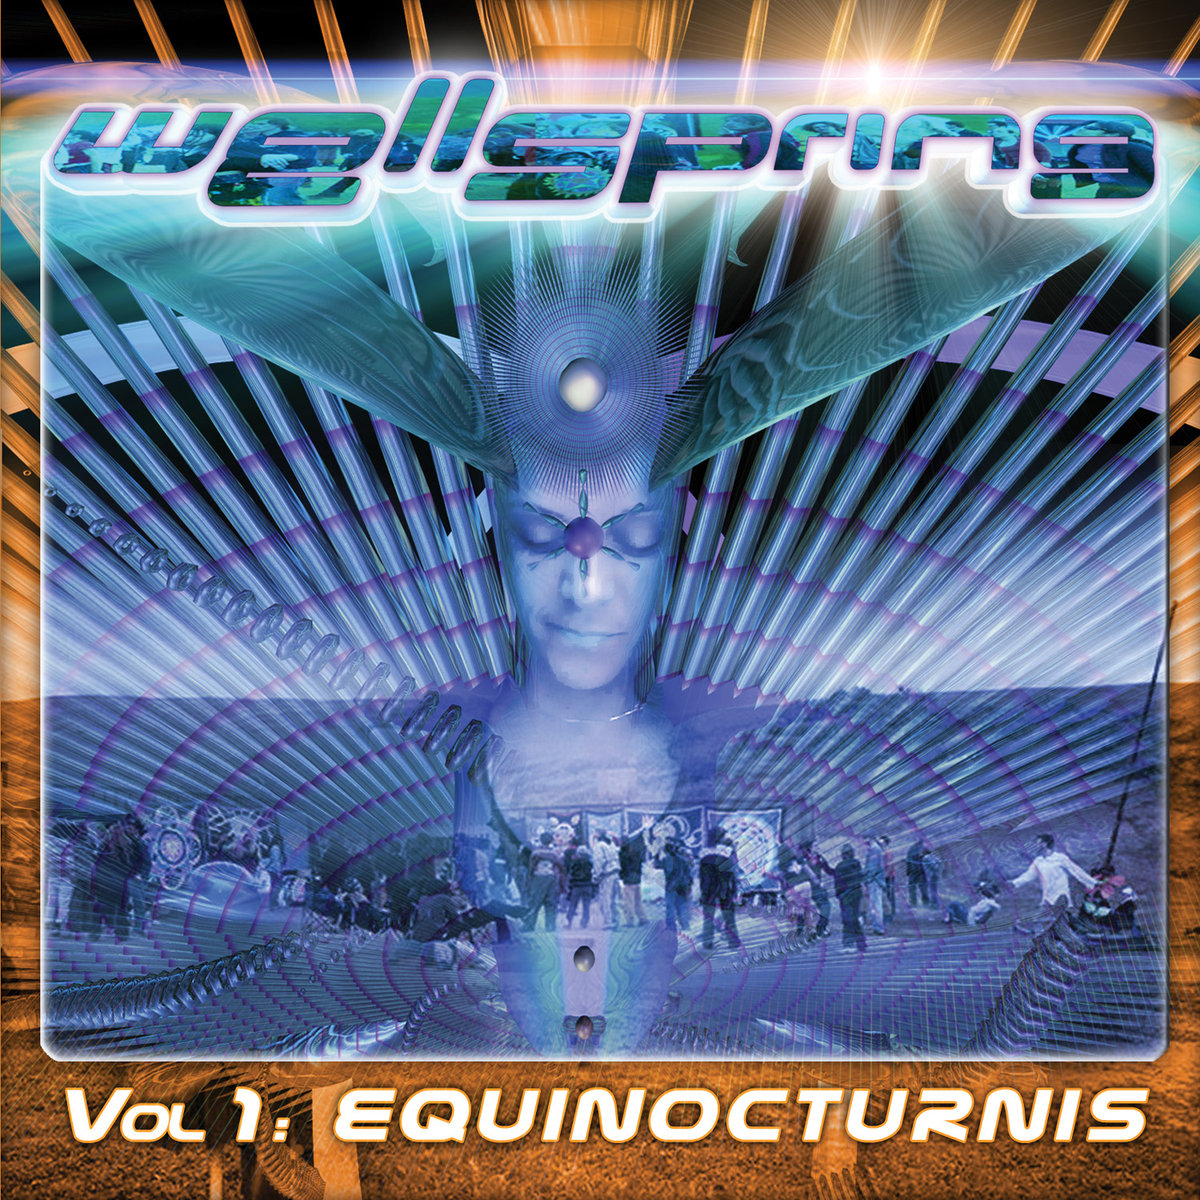 Quadra - Vibrations @ 'Various Artists - Wellspring Vol. 1: Equinocturnis' album (electronic, goa)